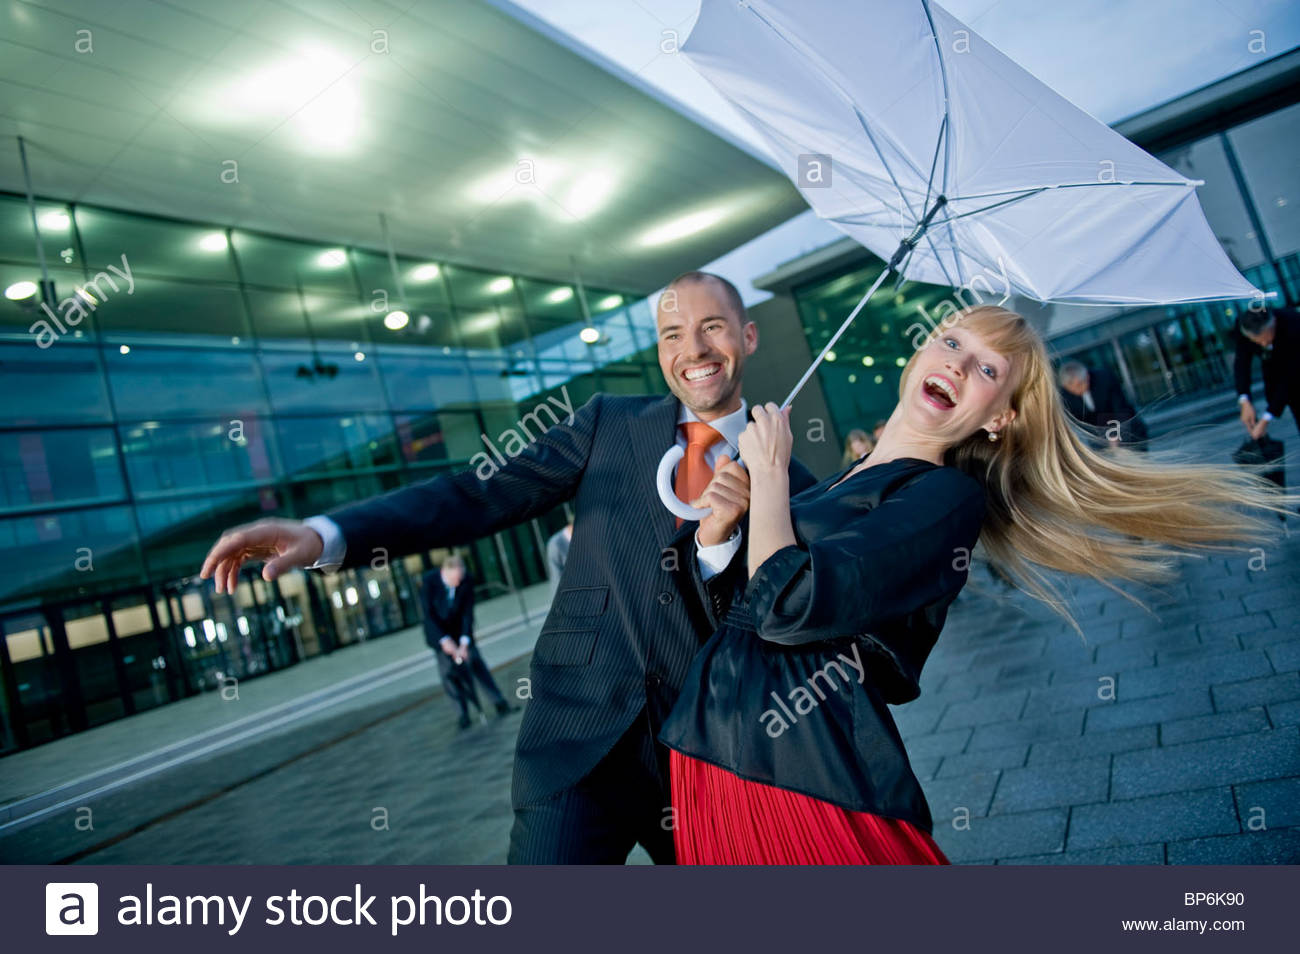 A businessman and businesswoman holding an umbrella in strong wind - Stock Image